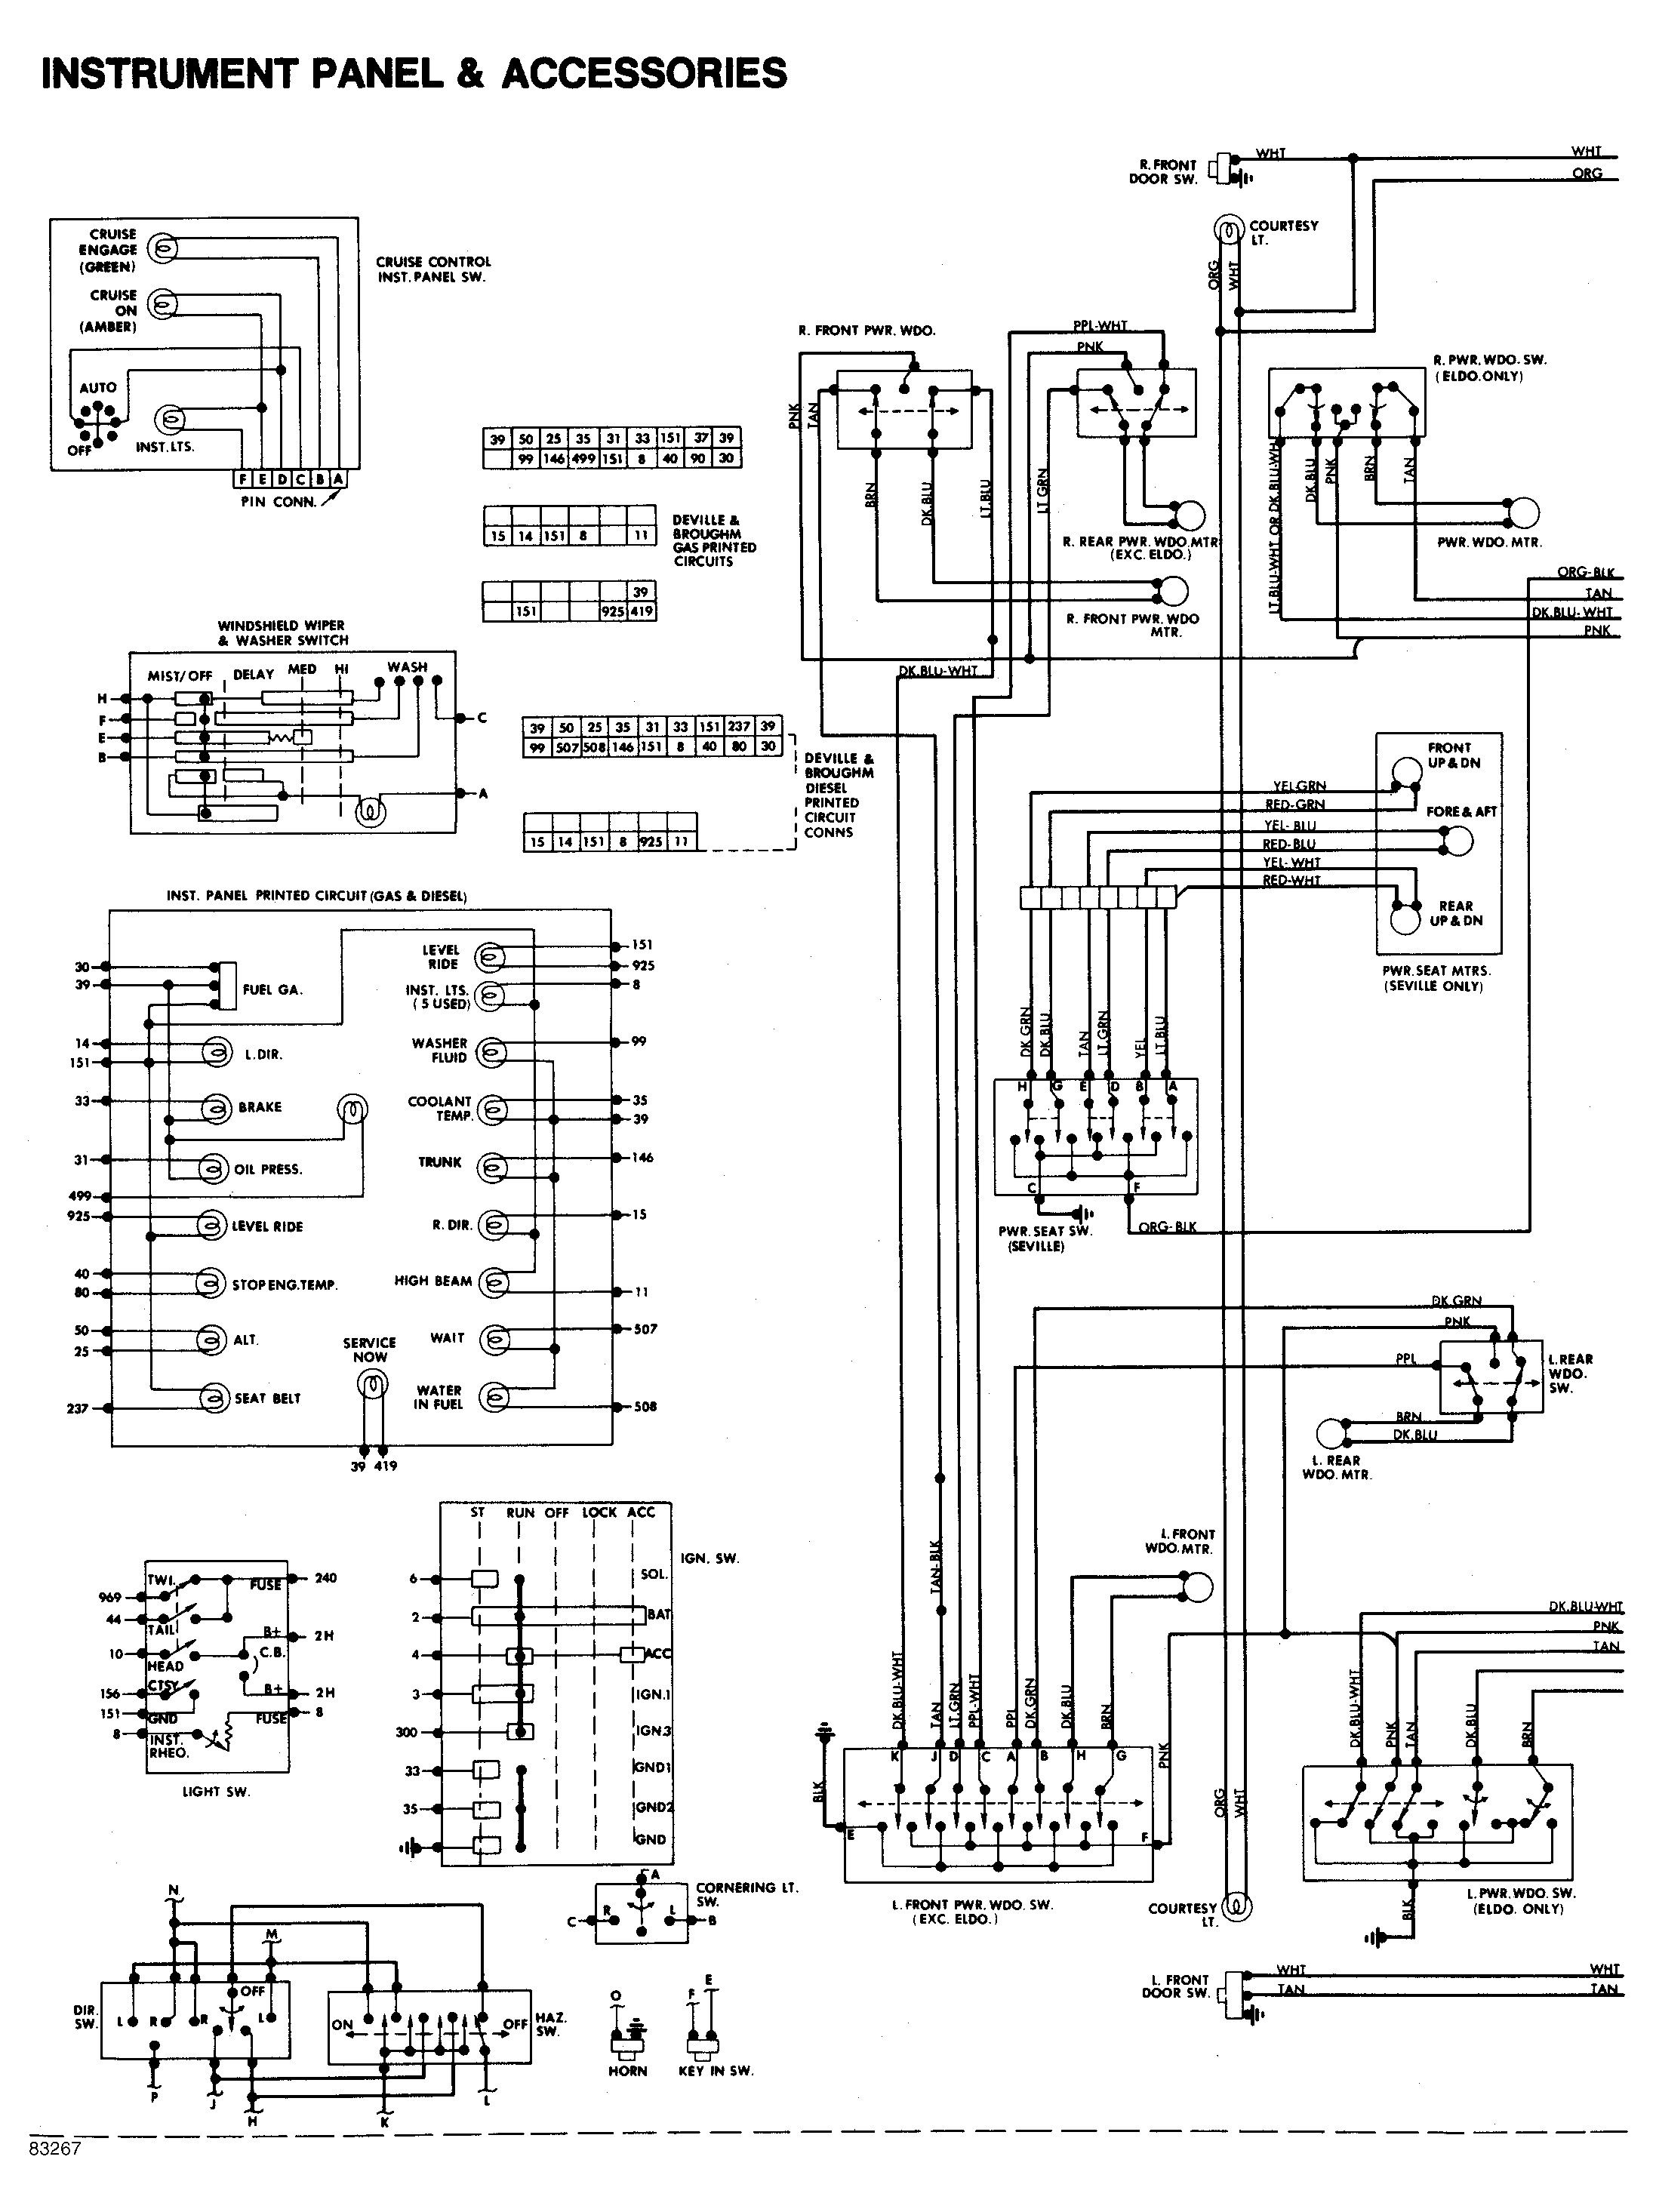 Daewoo Nexia Wiring Diagram - Ford Au Ignition Wiring Diagram for Wiring  Diagram SchematicsWiring Diagram Schematics